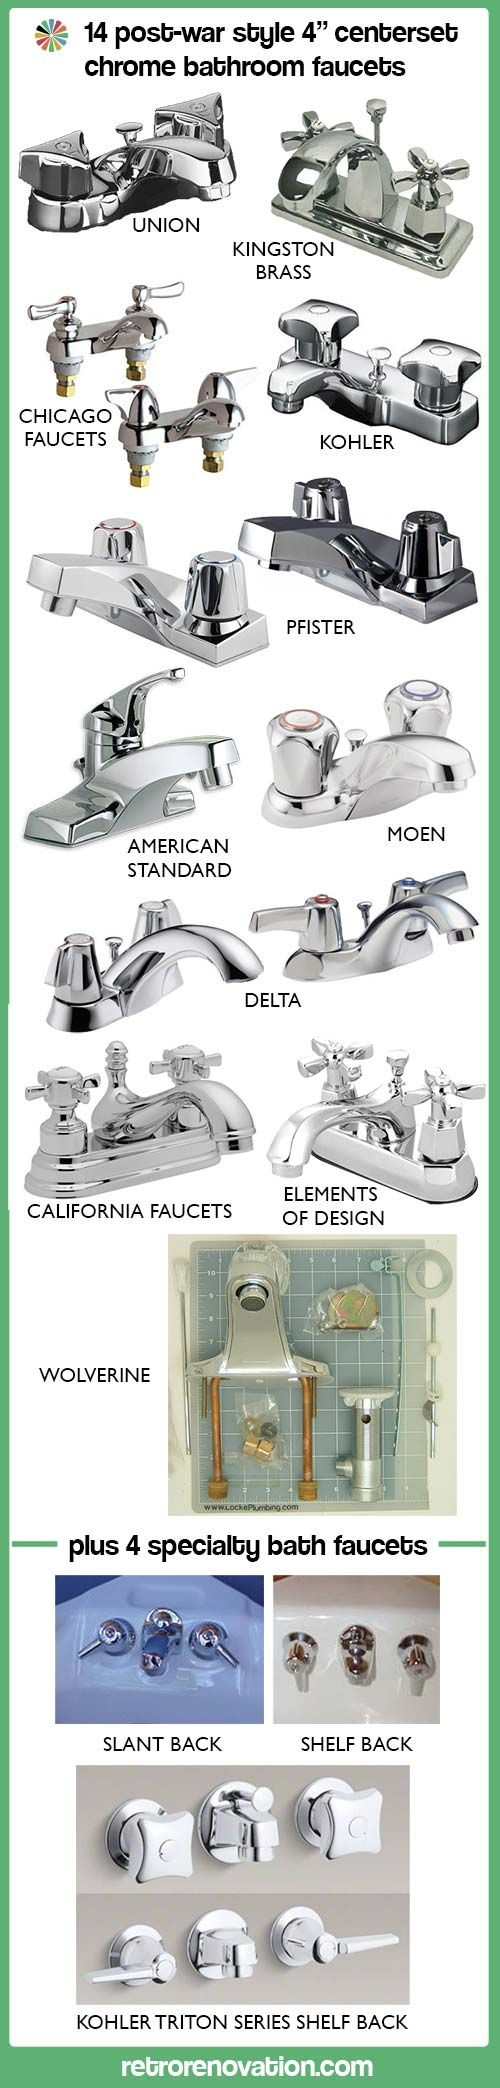 14 four-inch-center bathroom sink faucets suitable for a postwar bathroom - Retro Renovation